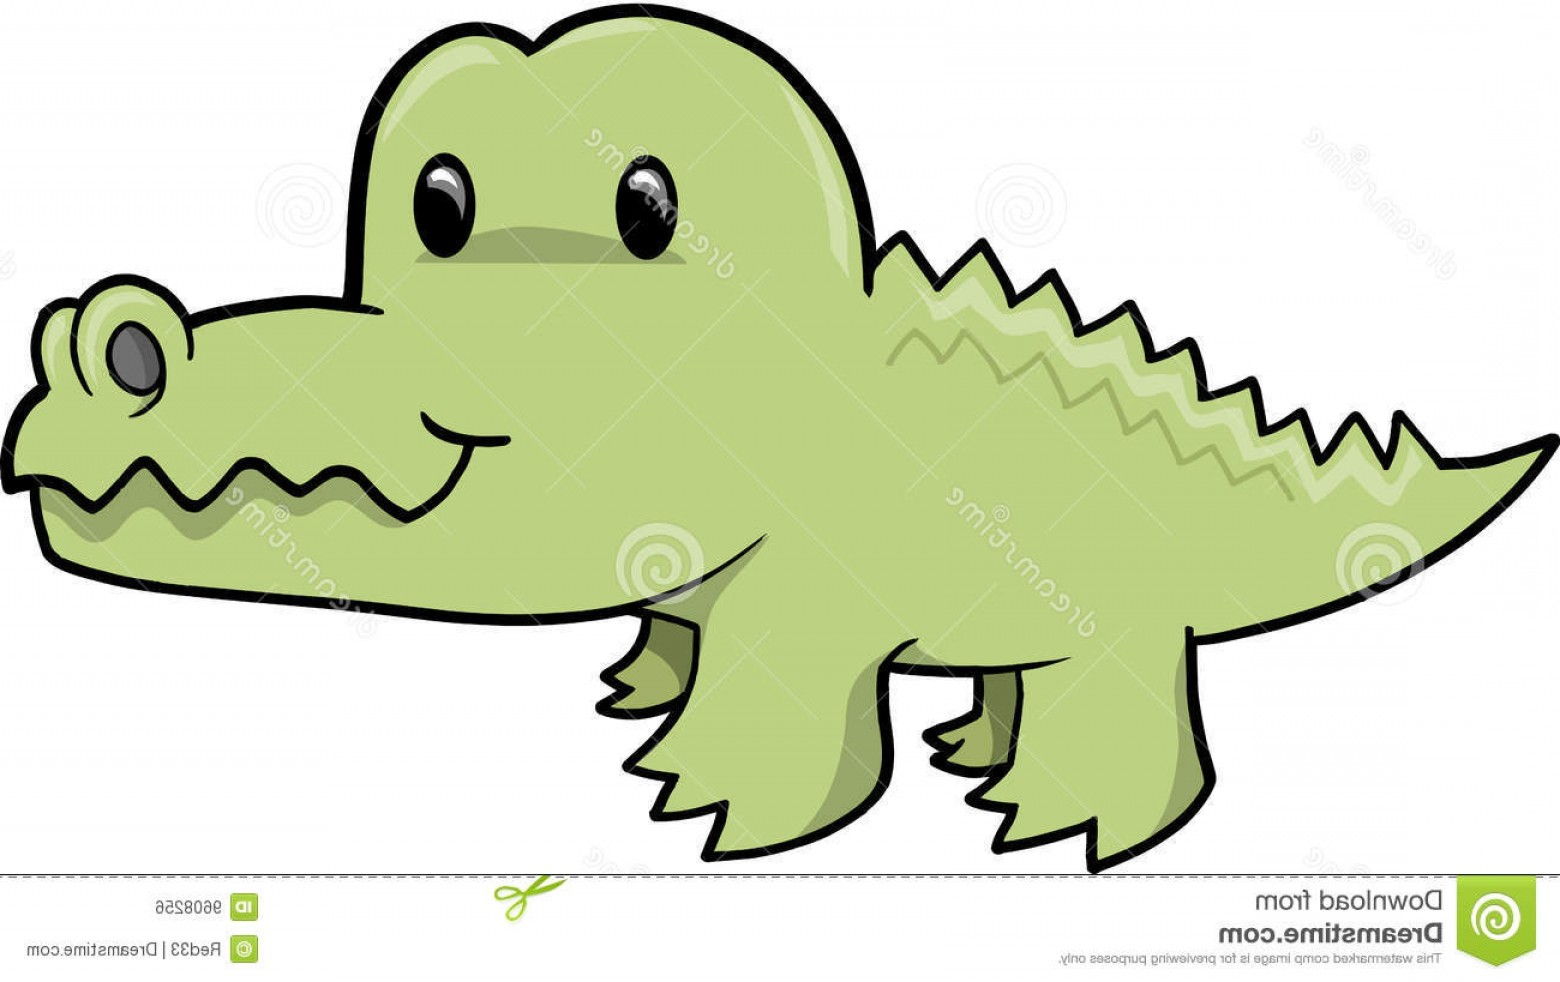 1560x982 Royalty Free Stock Image Cute Alligator Vector Illustration Image